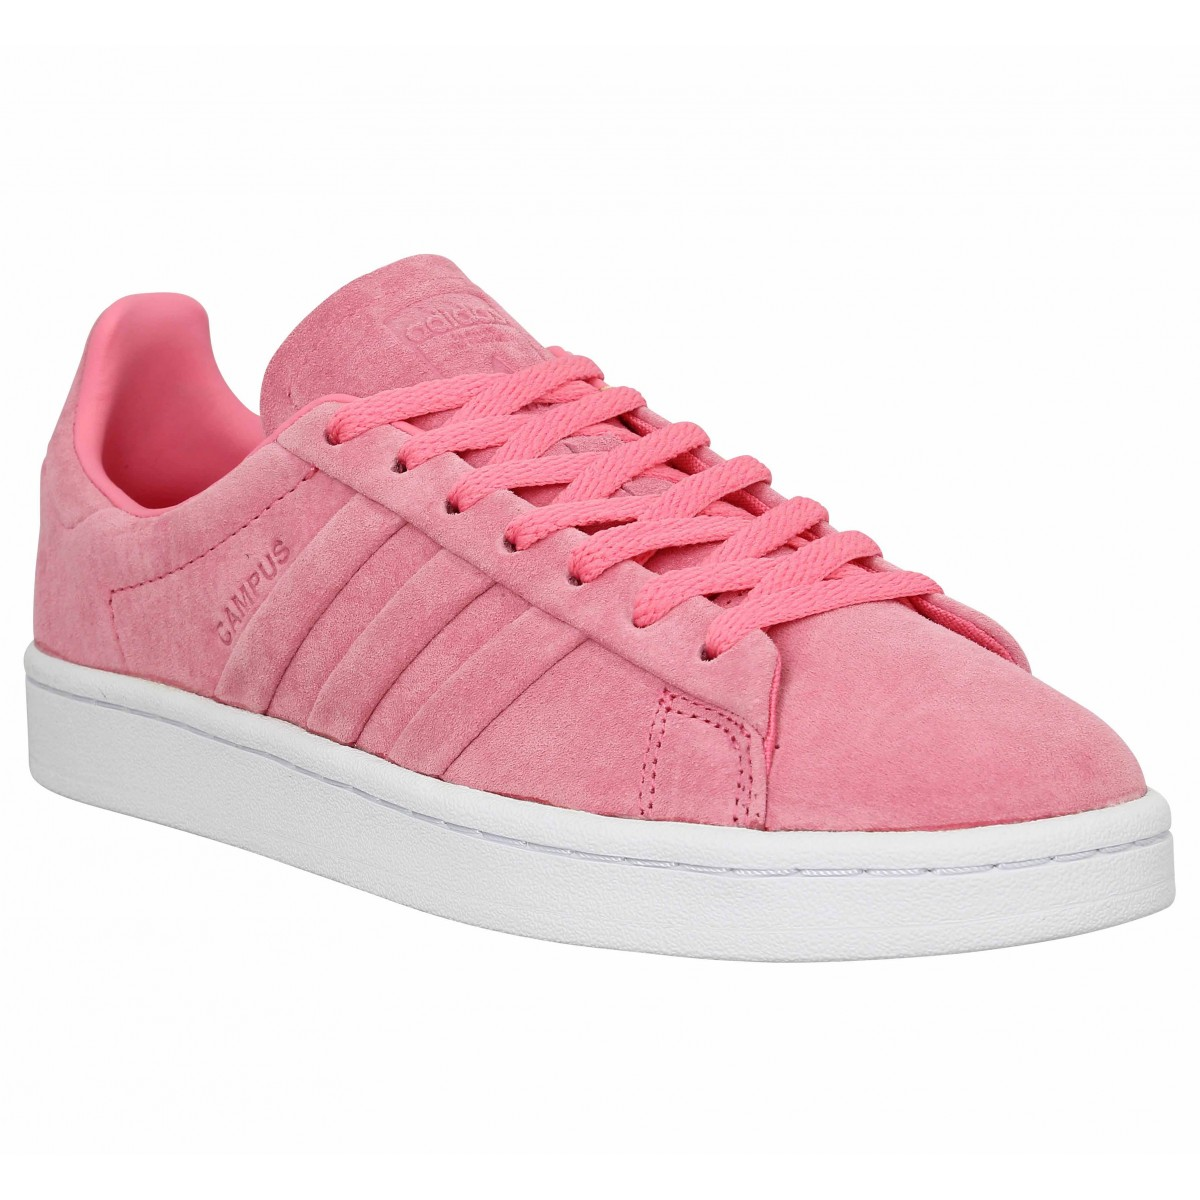 size 40 db906 566f2 Baskets ADIDAS Campus velours Femme Pink